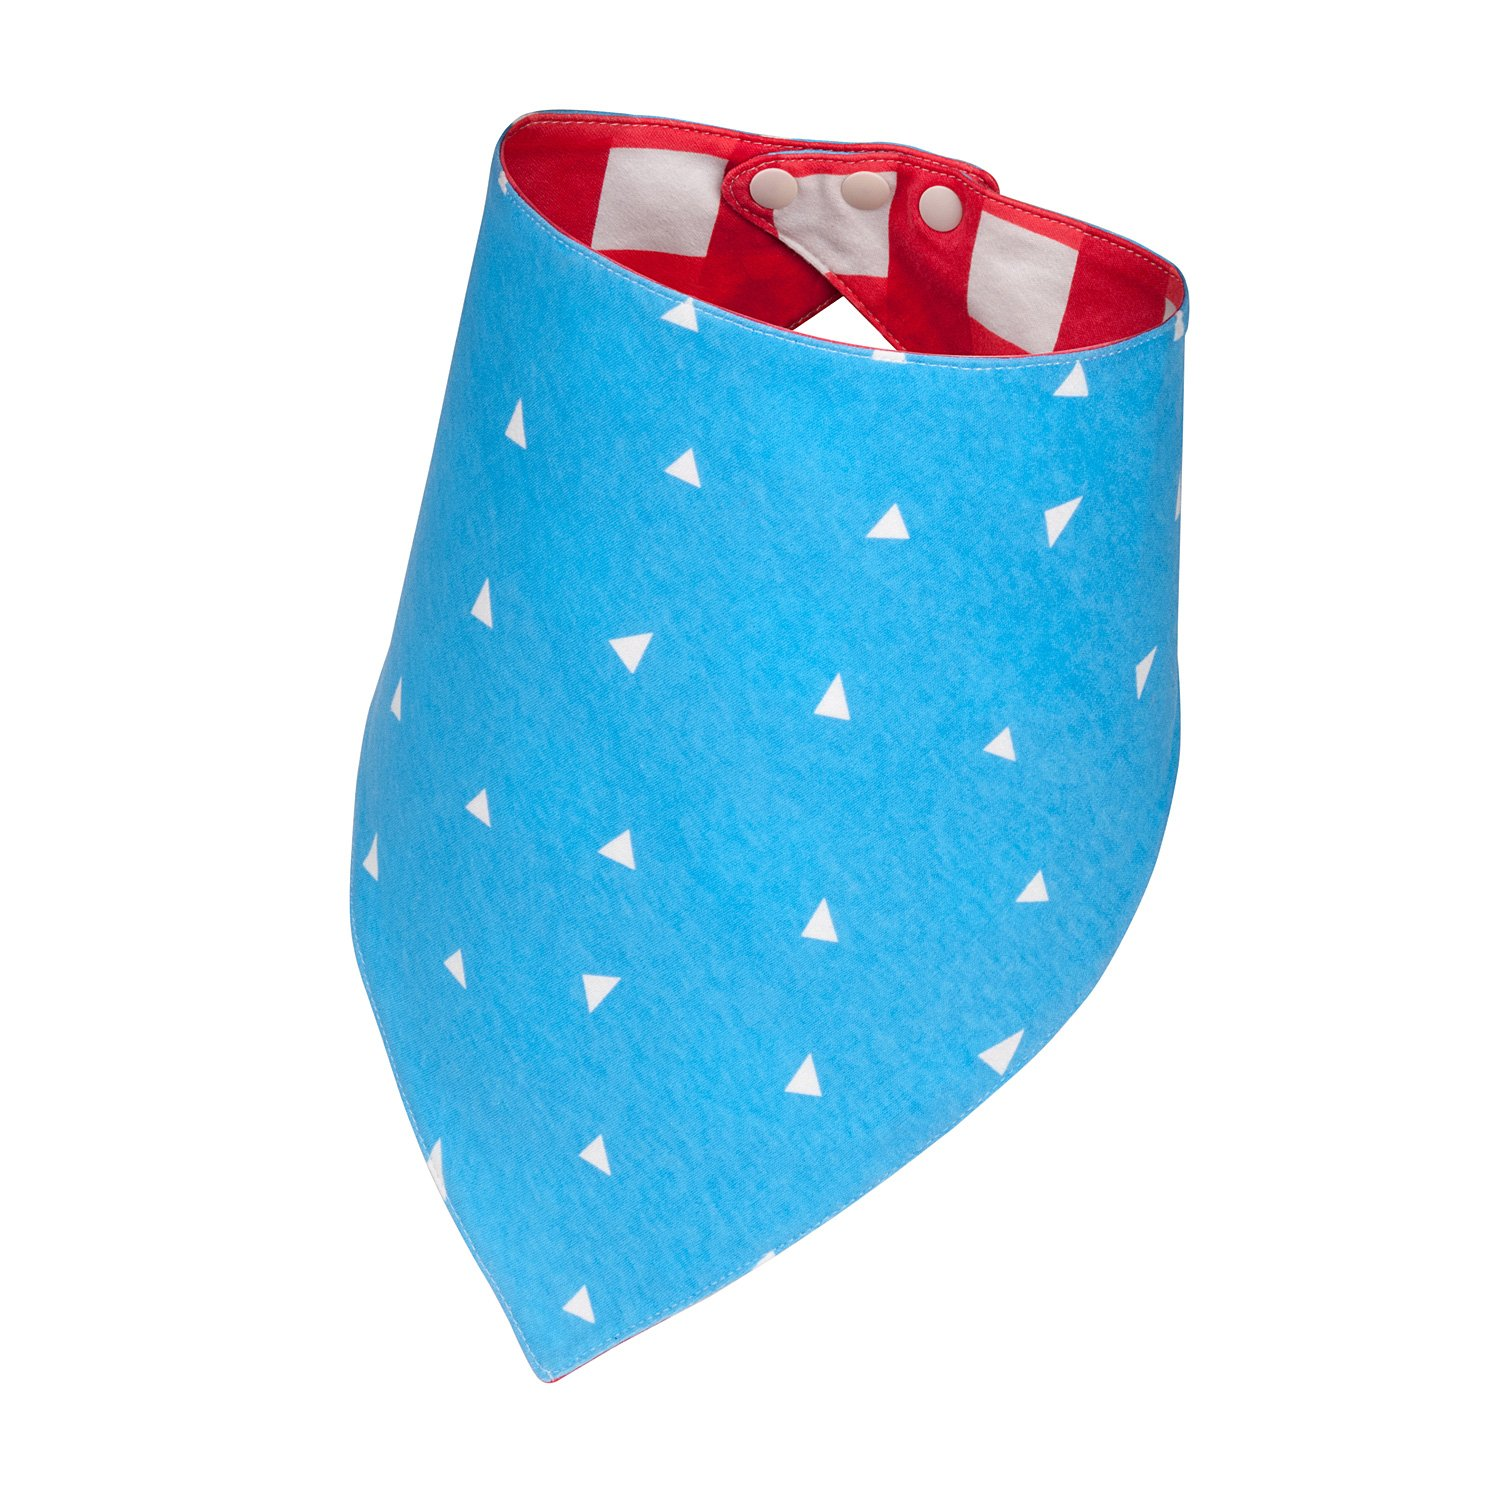 Red White and Blue Bandana | Large/XL Size | Reversible Dog Bandana, Cute Dog Accessories, Delivering Leo Quality - Standout like the King of the Jungle